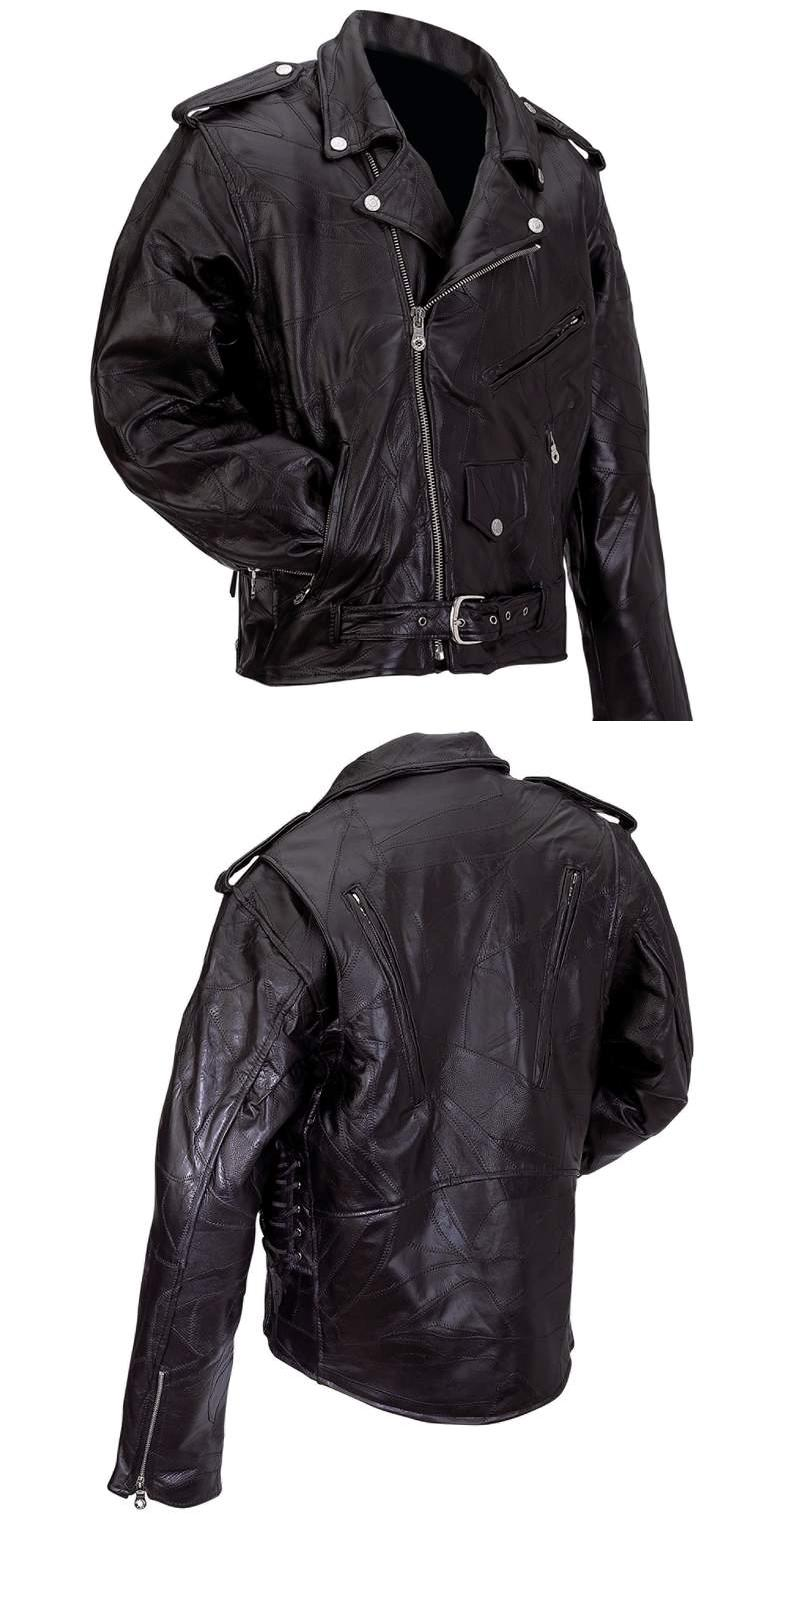 Buffalo Leather Motorcycle Jackets (GFMOT)